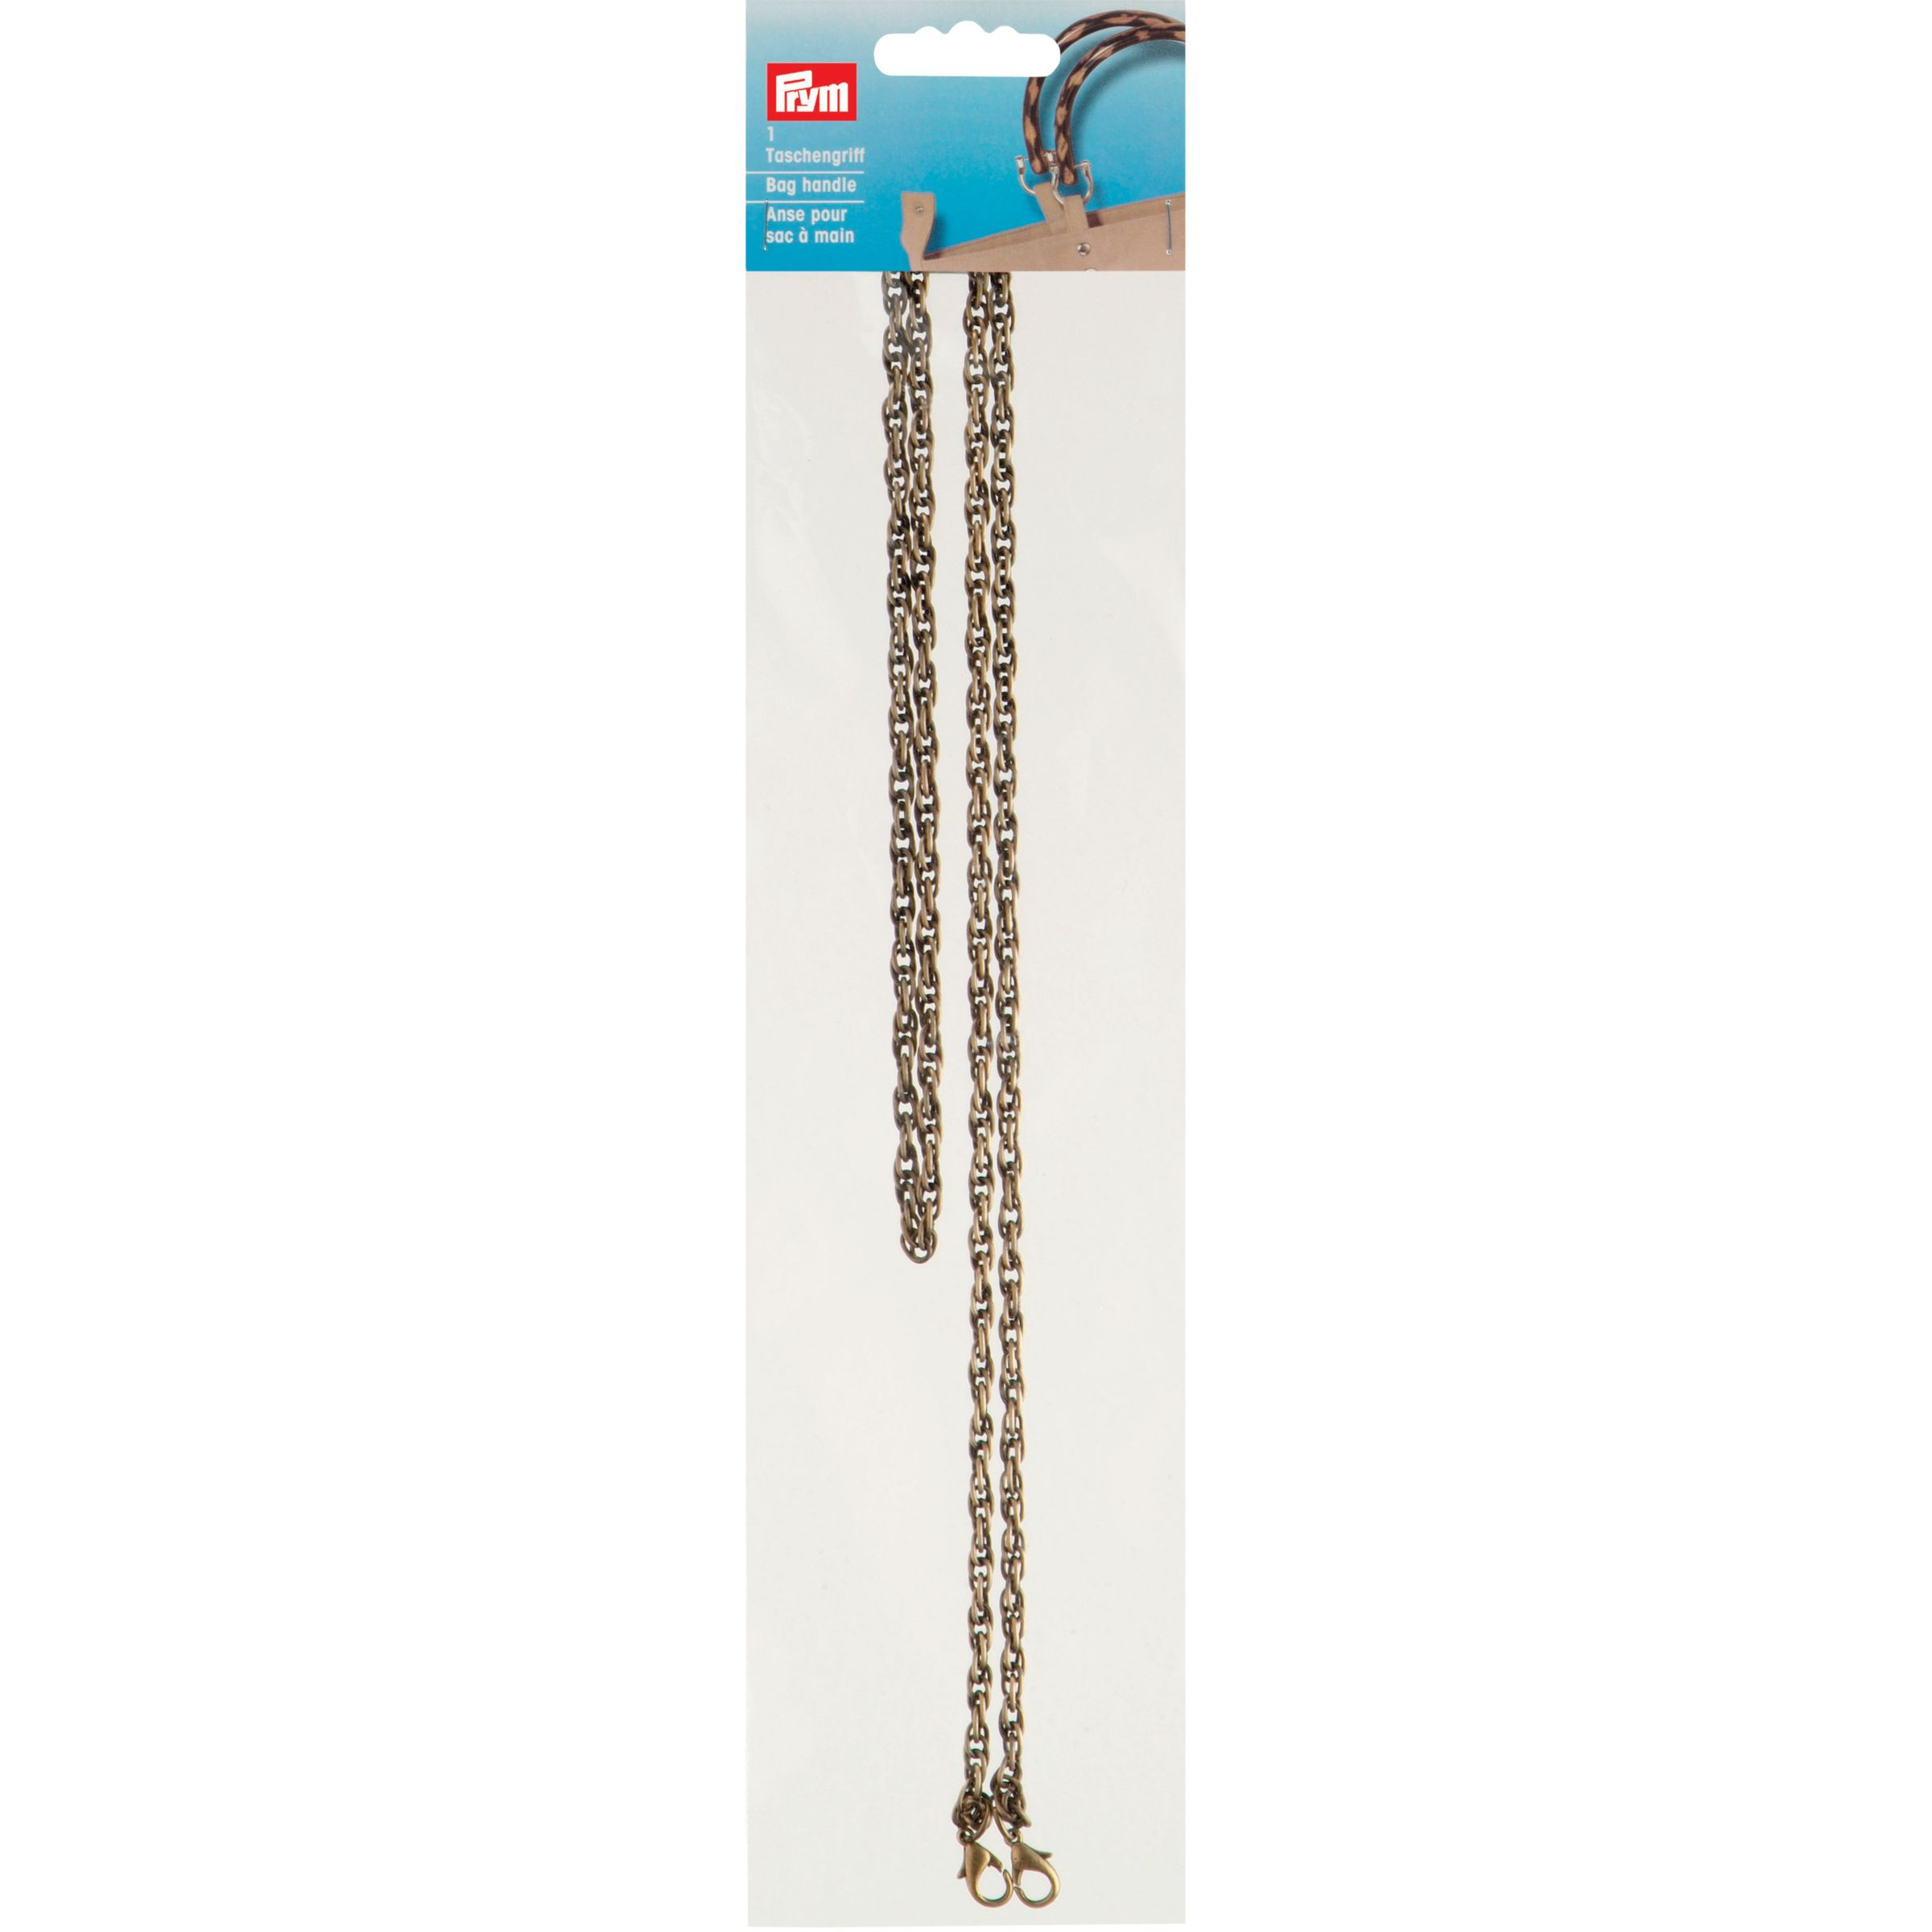 Prym Anna Gold Effect Chain Bag Handle, 110cm, 1 Per Pack